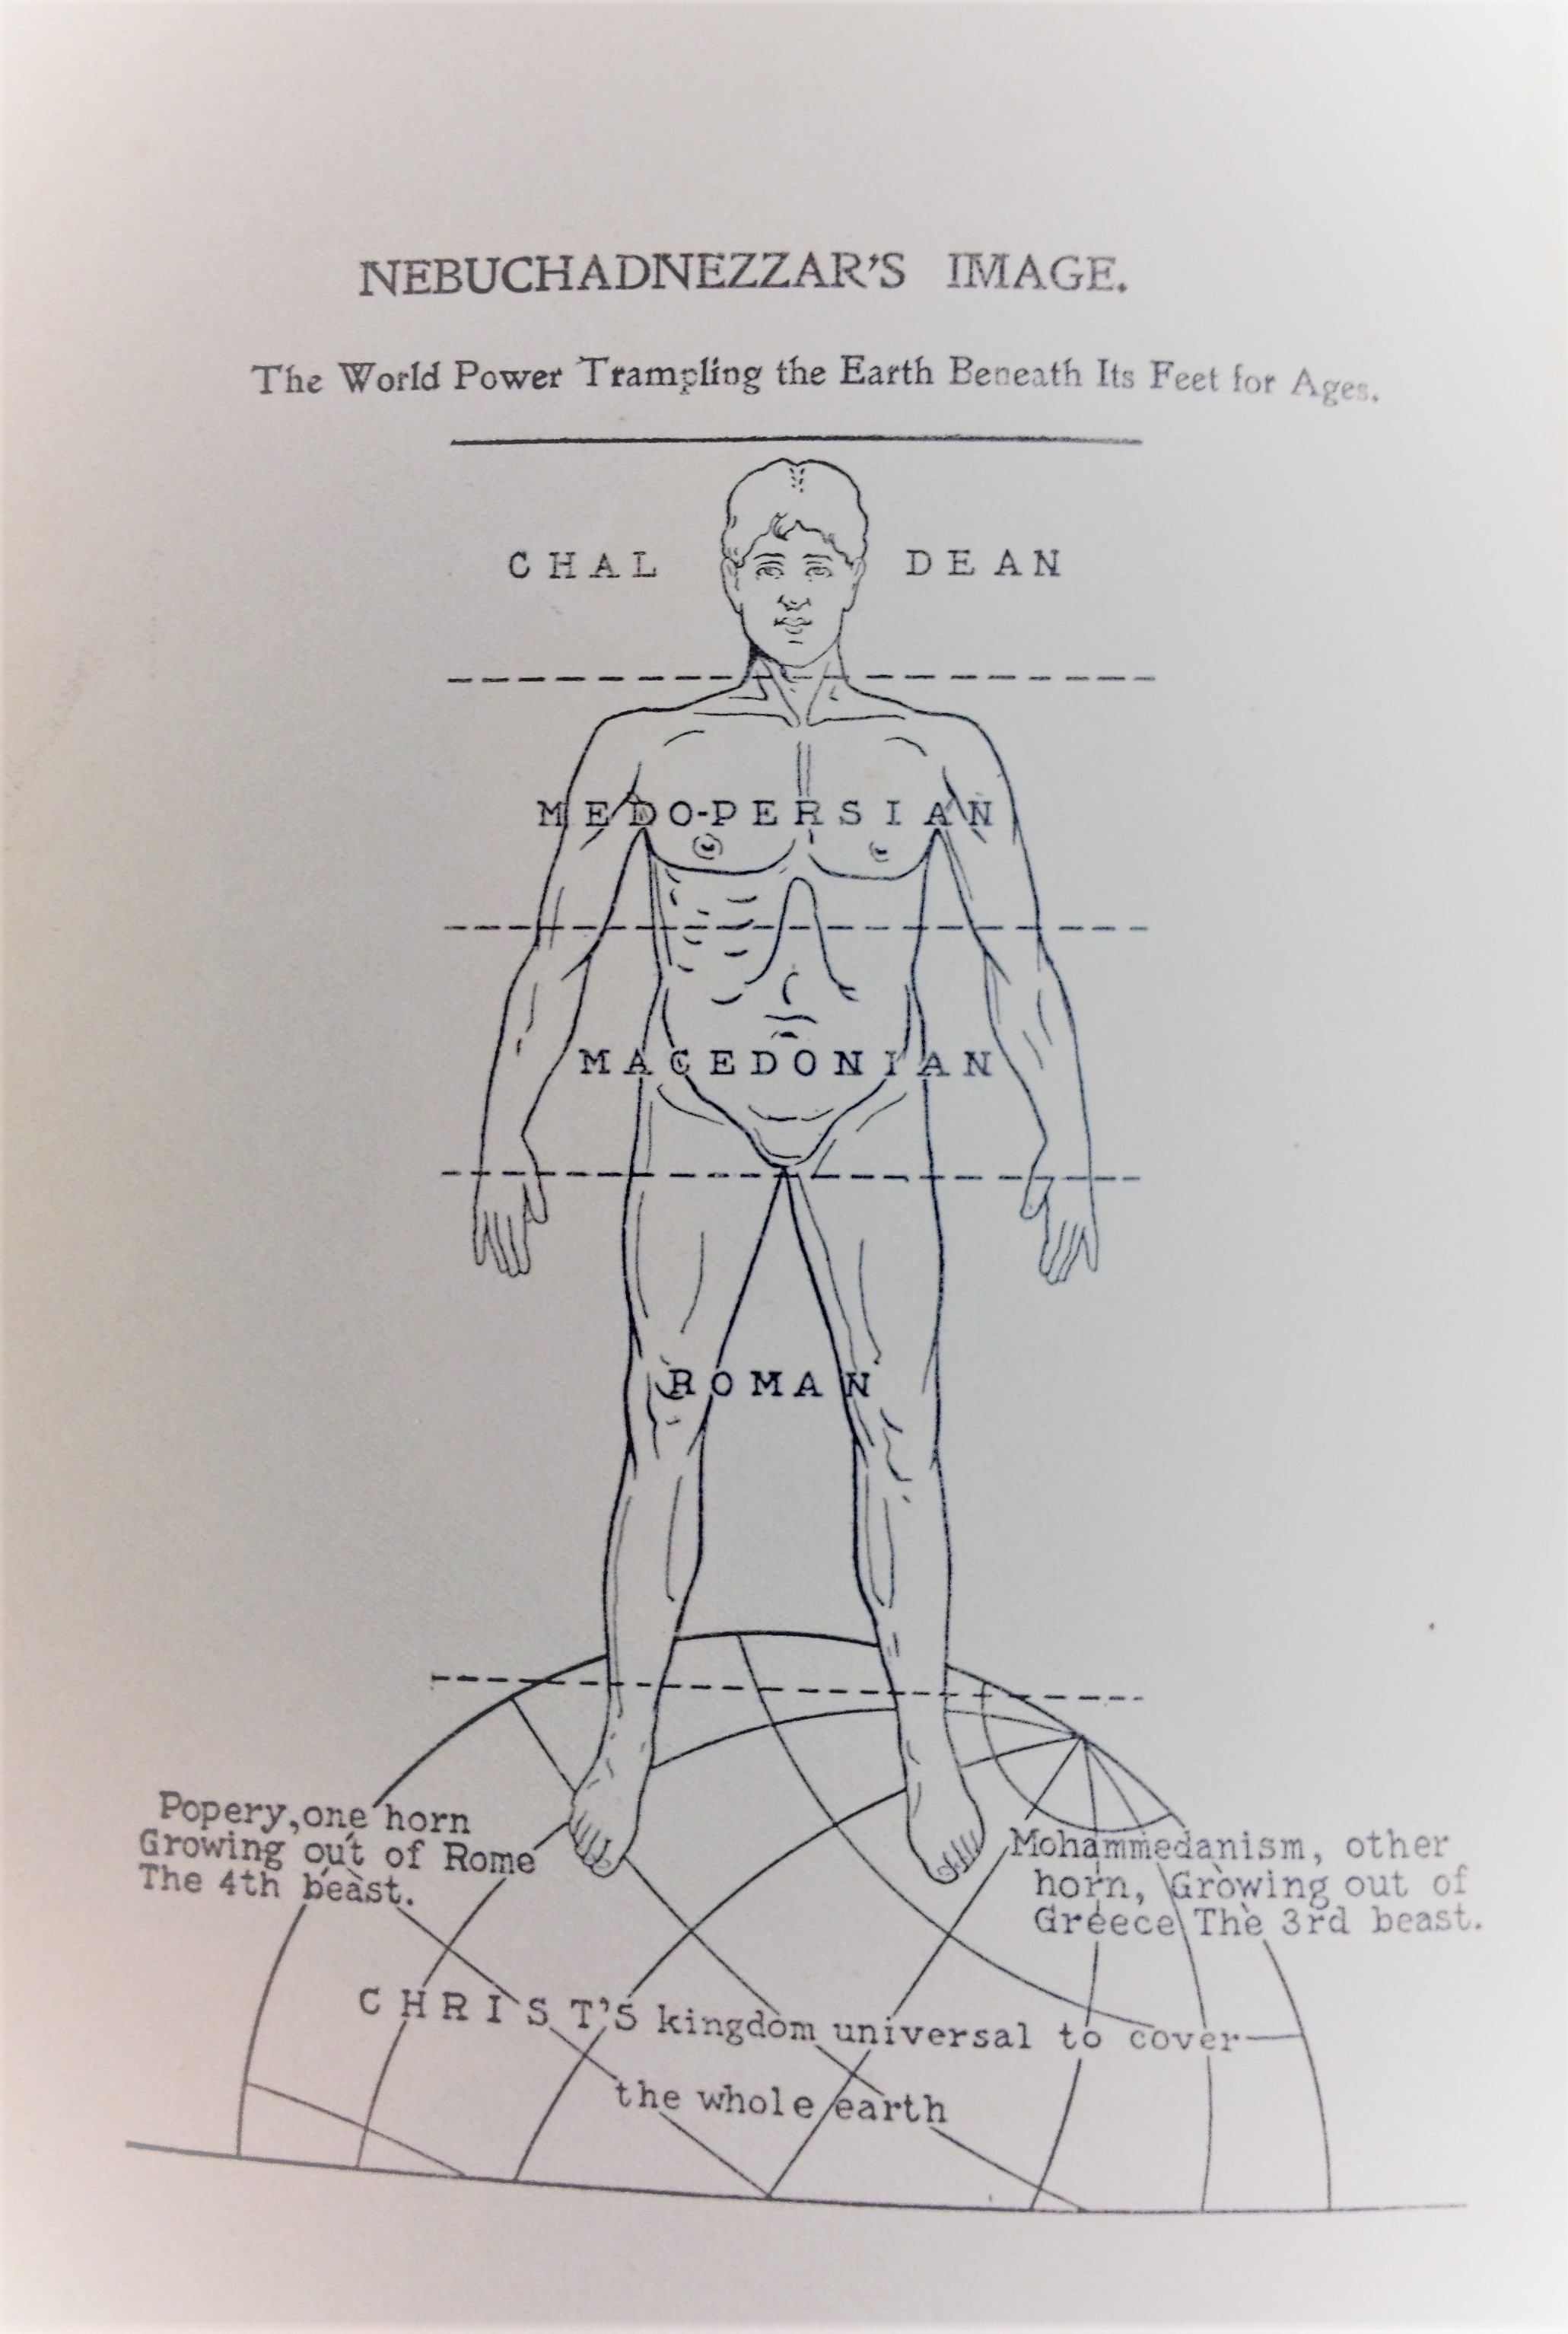 Nebuchadnezzar's image as a diagram of the prophetical scheme of Scripture.